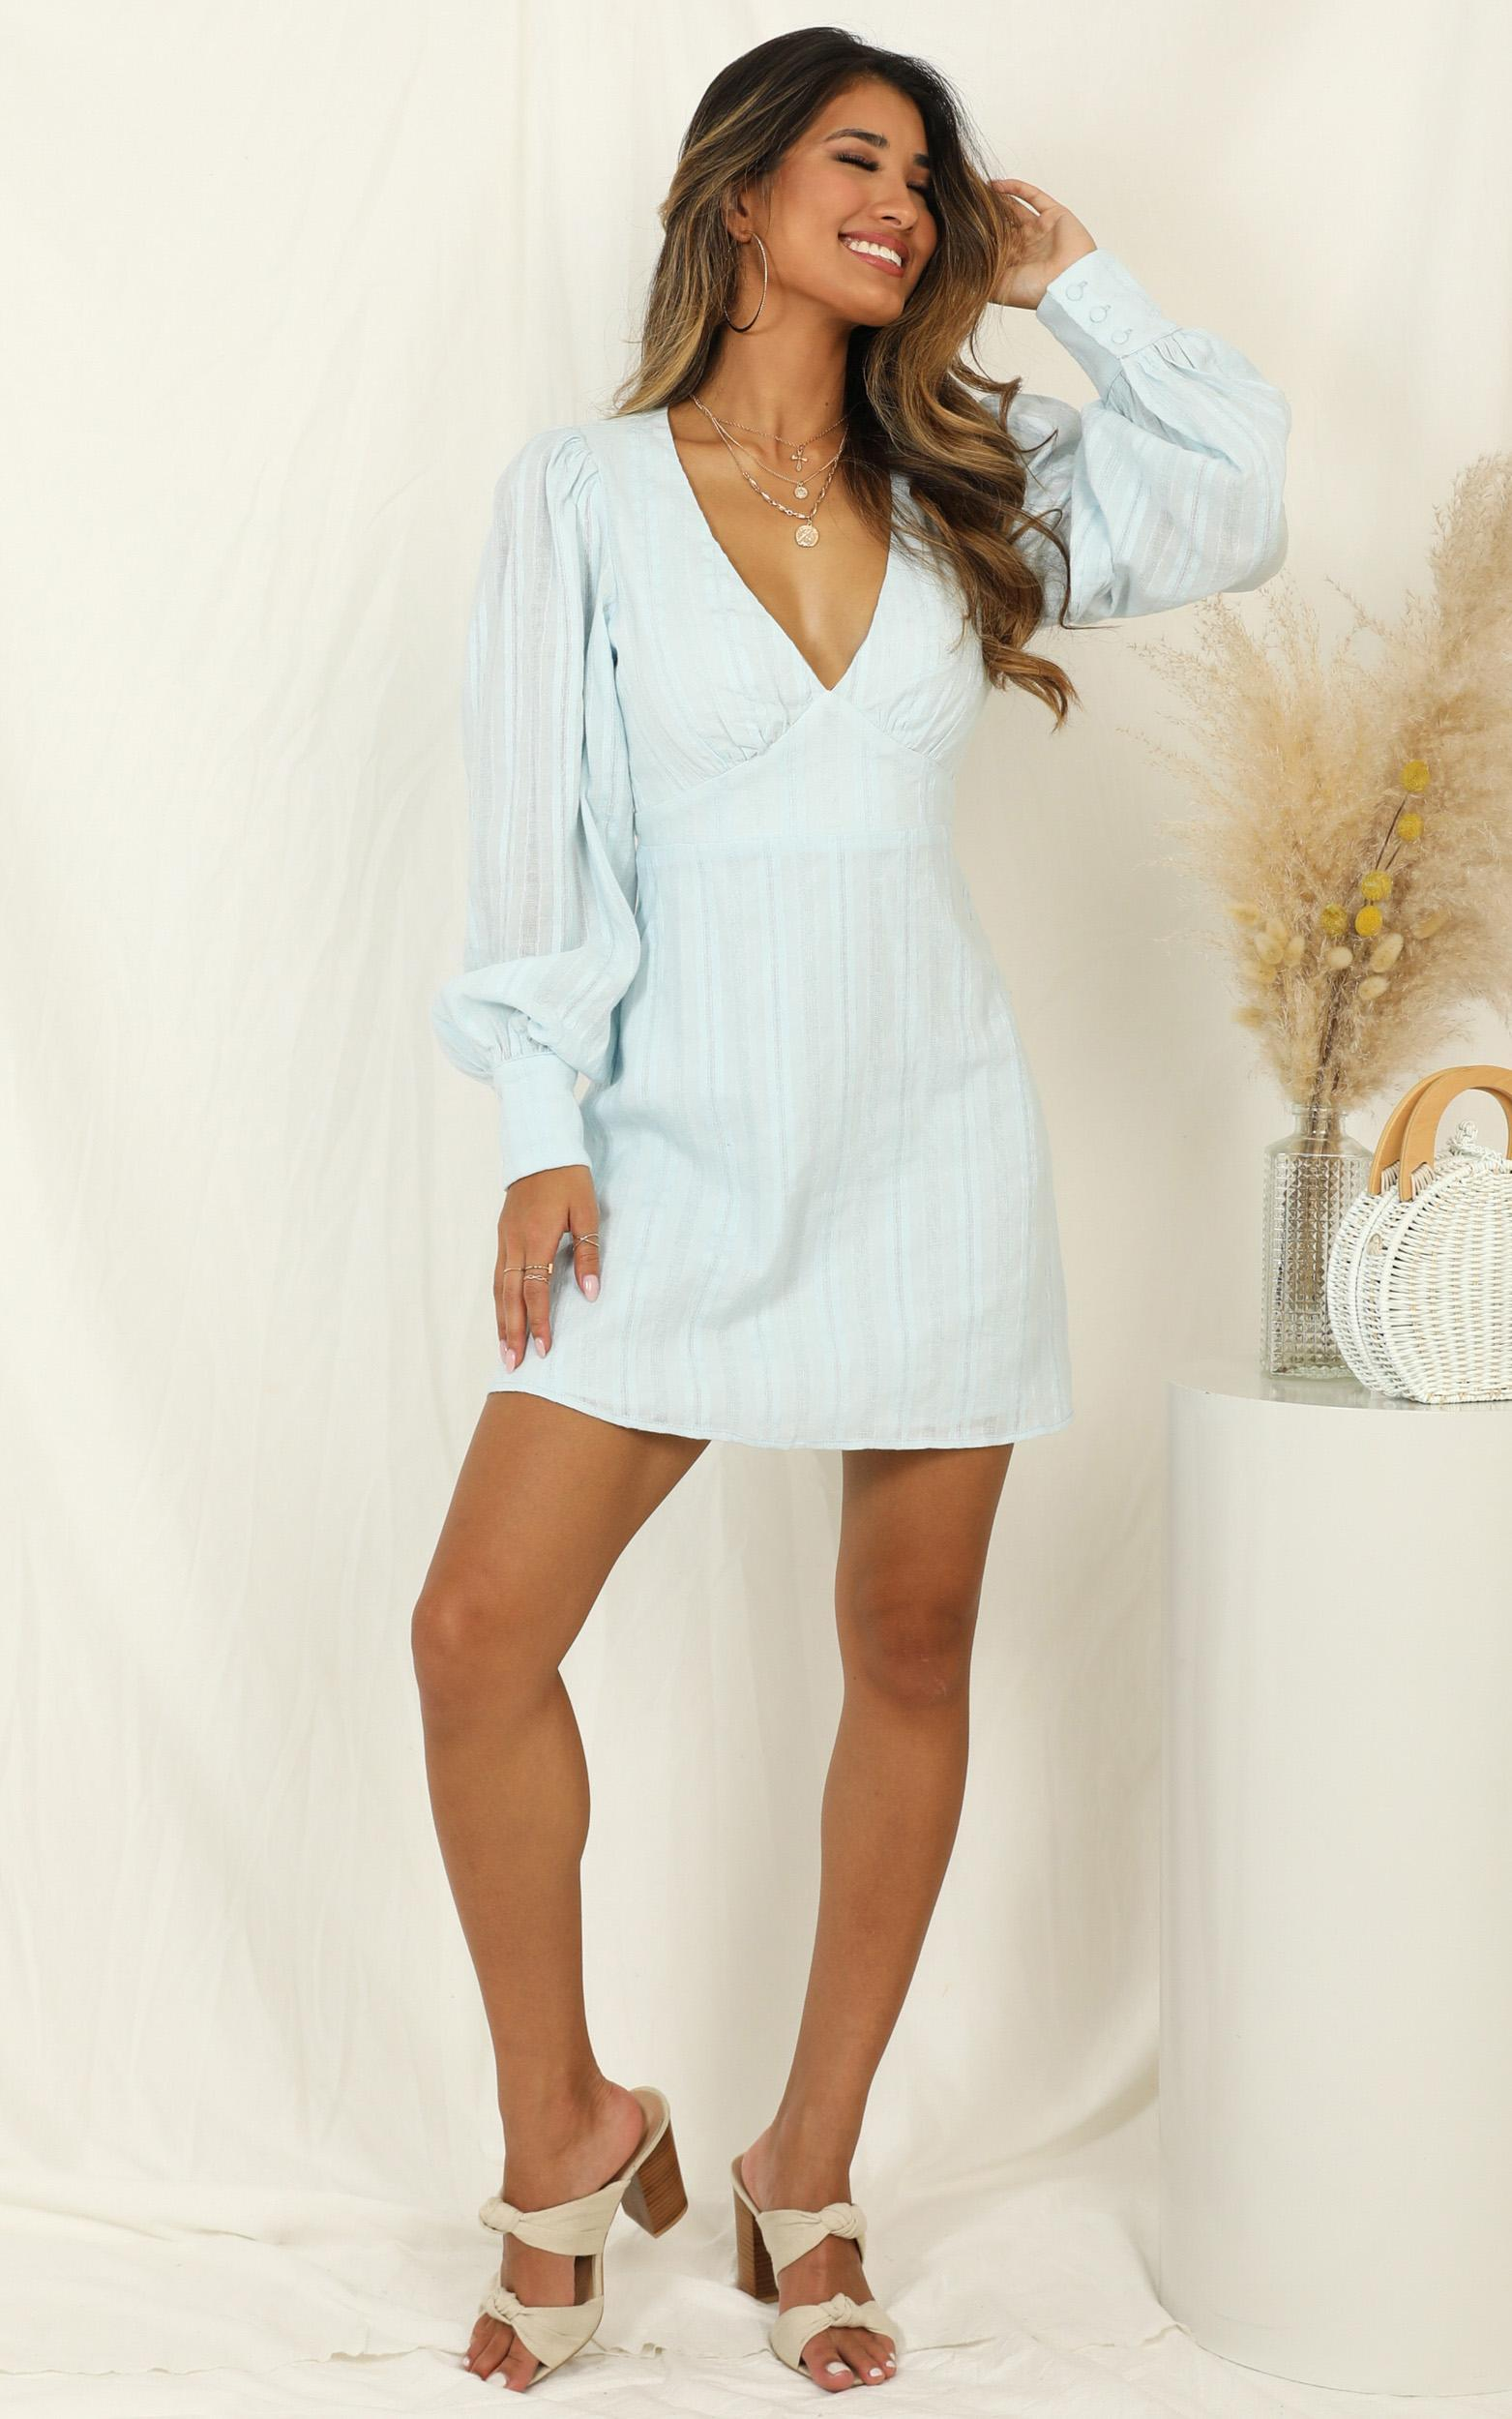 Reckless Decisions Dress in blue - 14 (XL), Blue, hi-res image number null